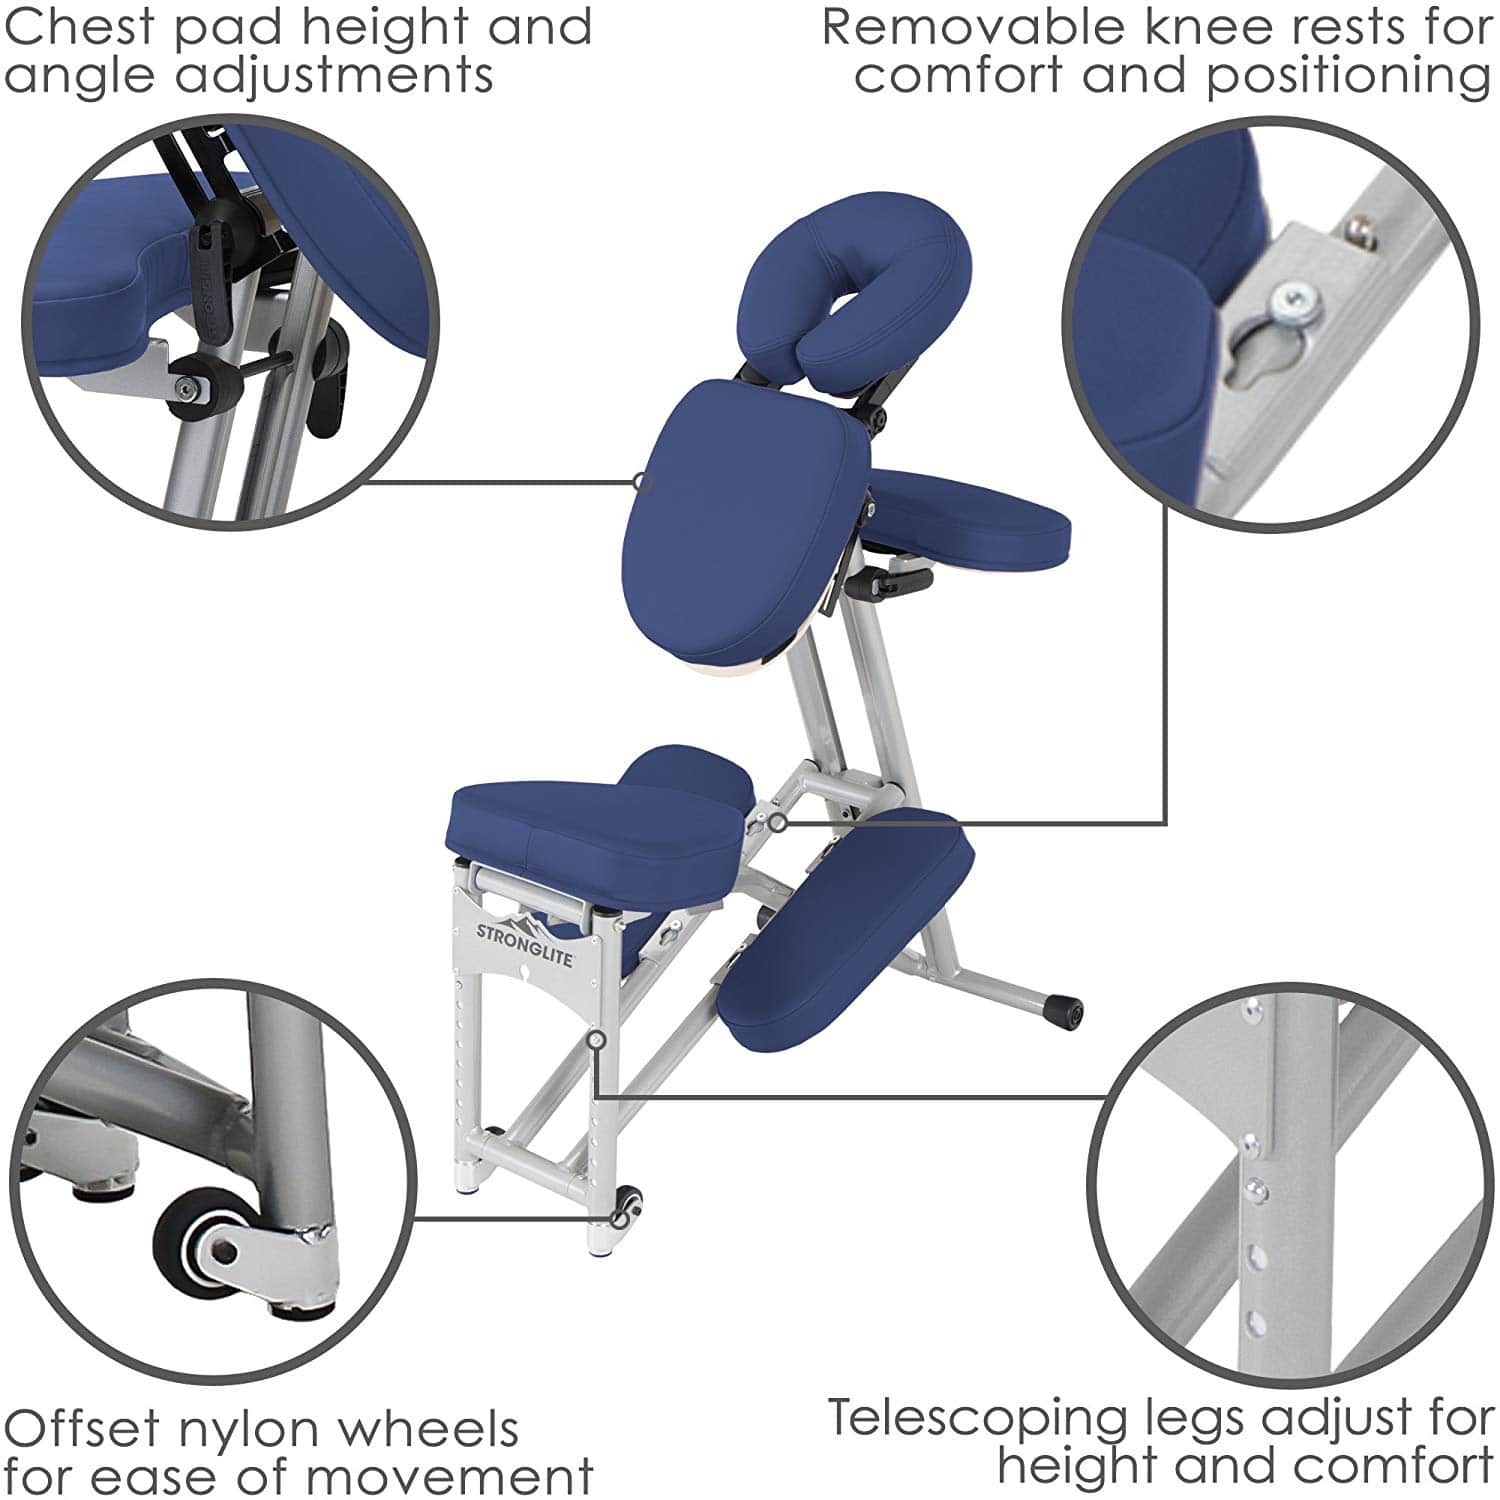 Stronglite massagechair topratedhomeproducts info